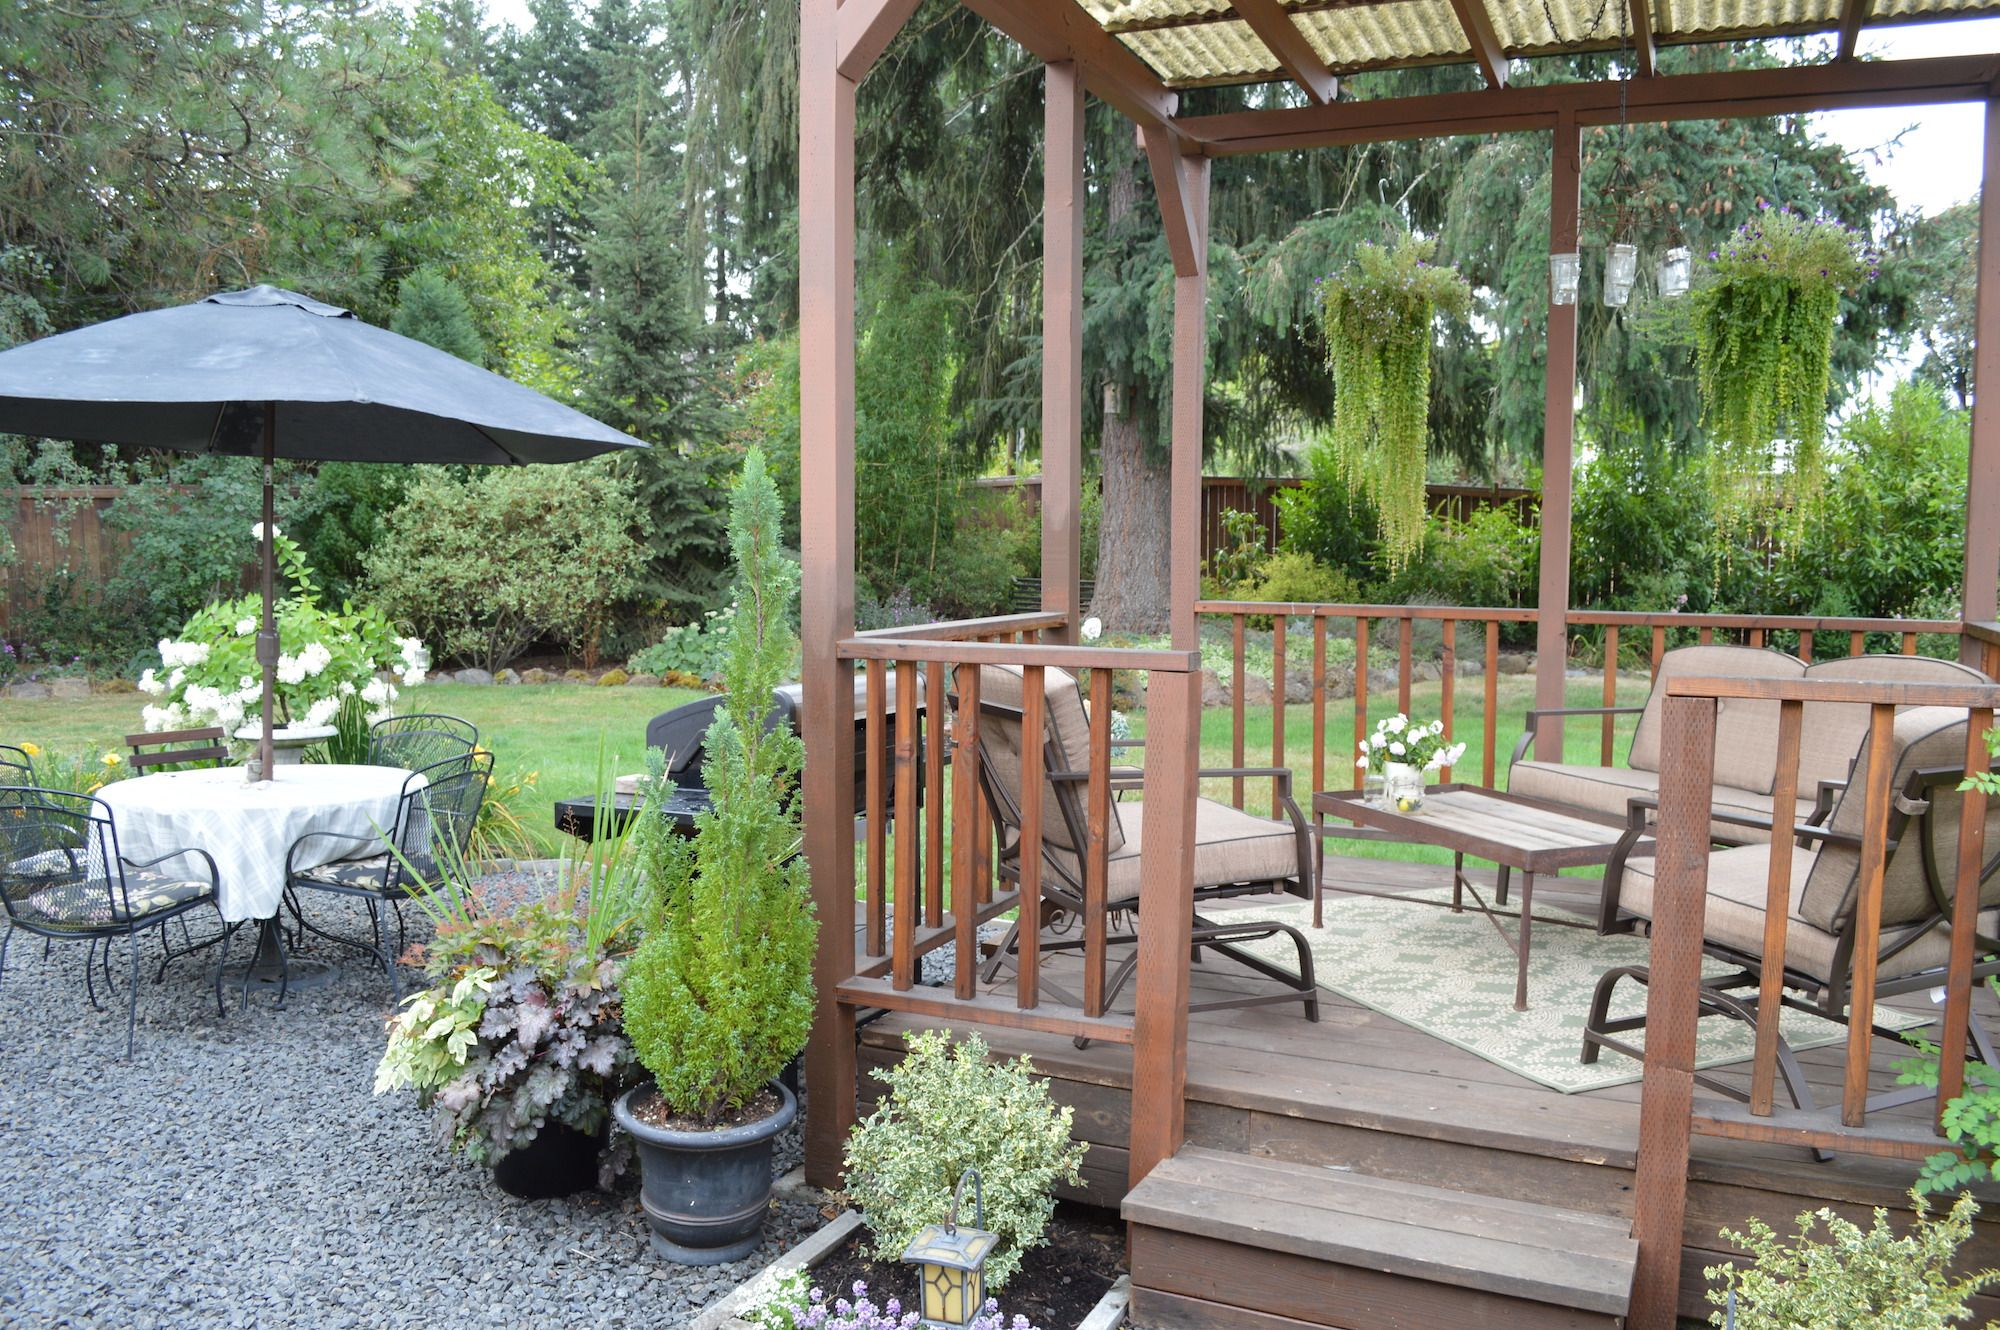 16 Best Pergola Ideas For The Backyard How To Use A Pergola pertaining to 14 Smart Initiatives of How to Make Small Backyard Pergola Ideas